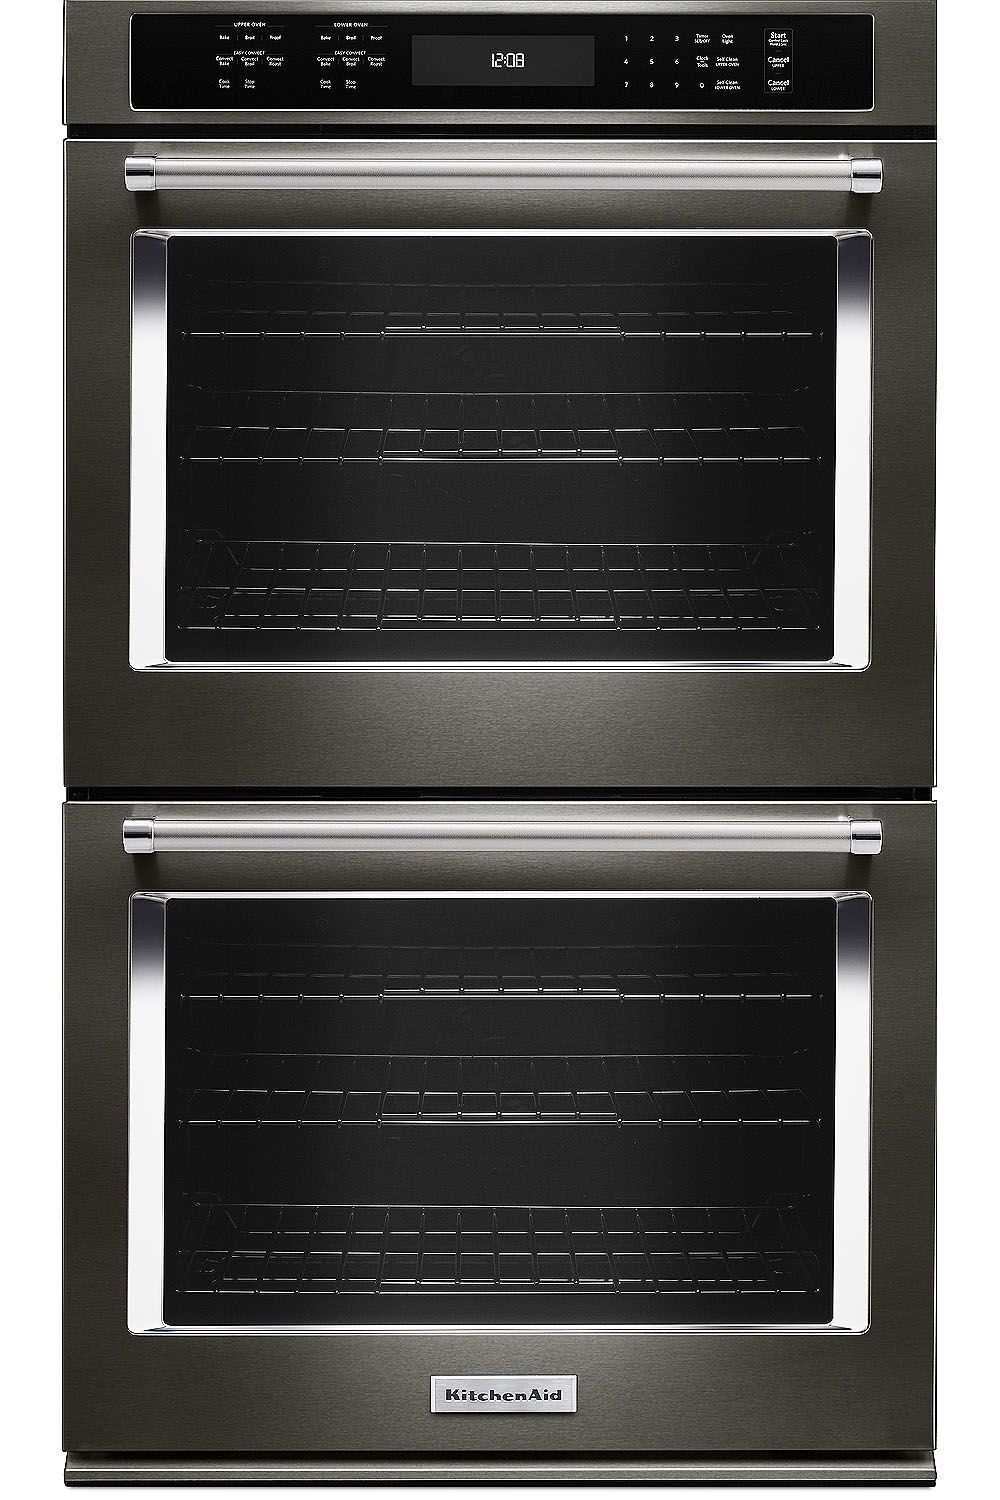 kitchenaid 27 black stainless steel double wall oven kode507ebs - Kitchen Aid Oven